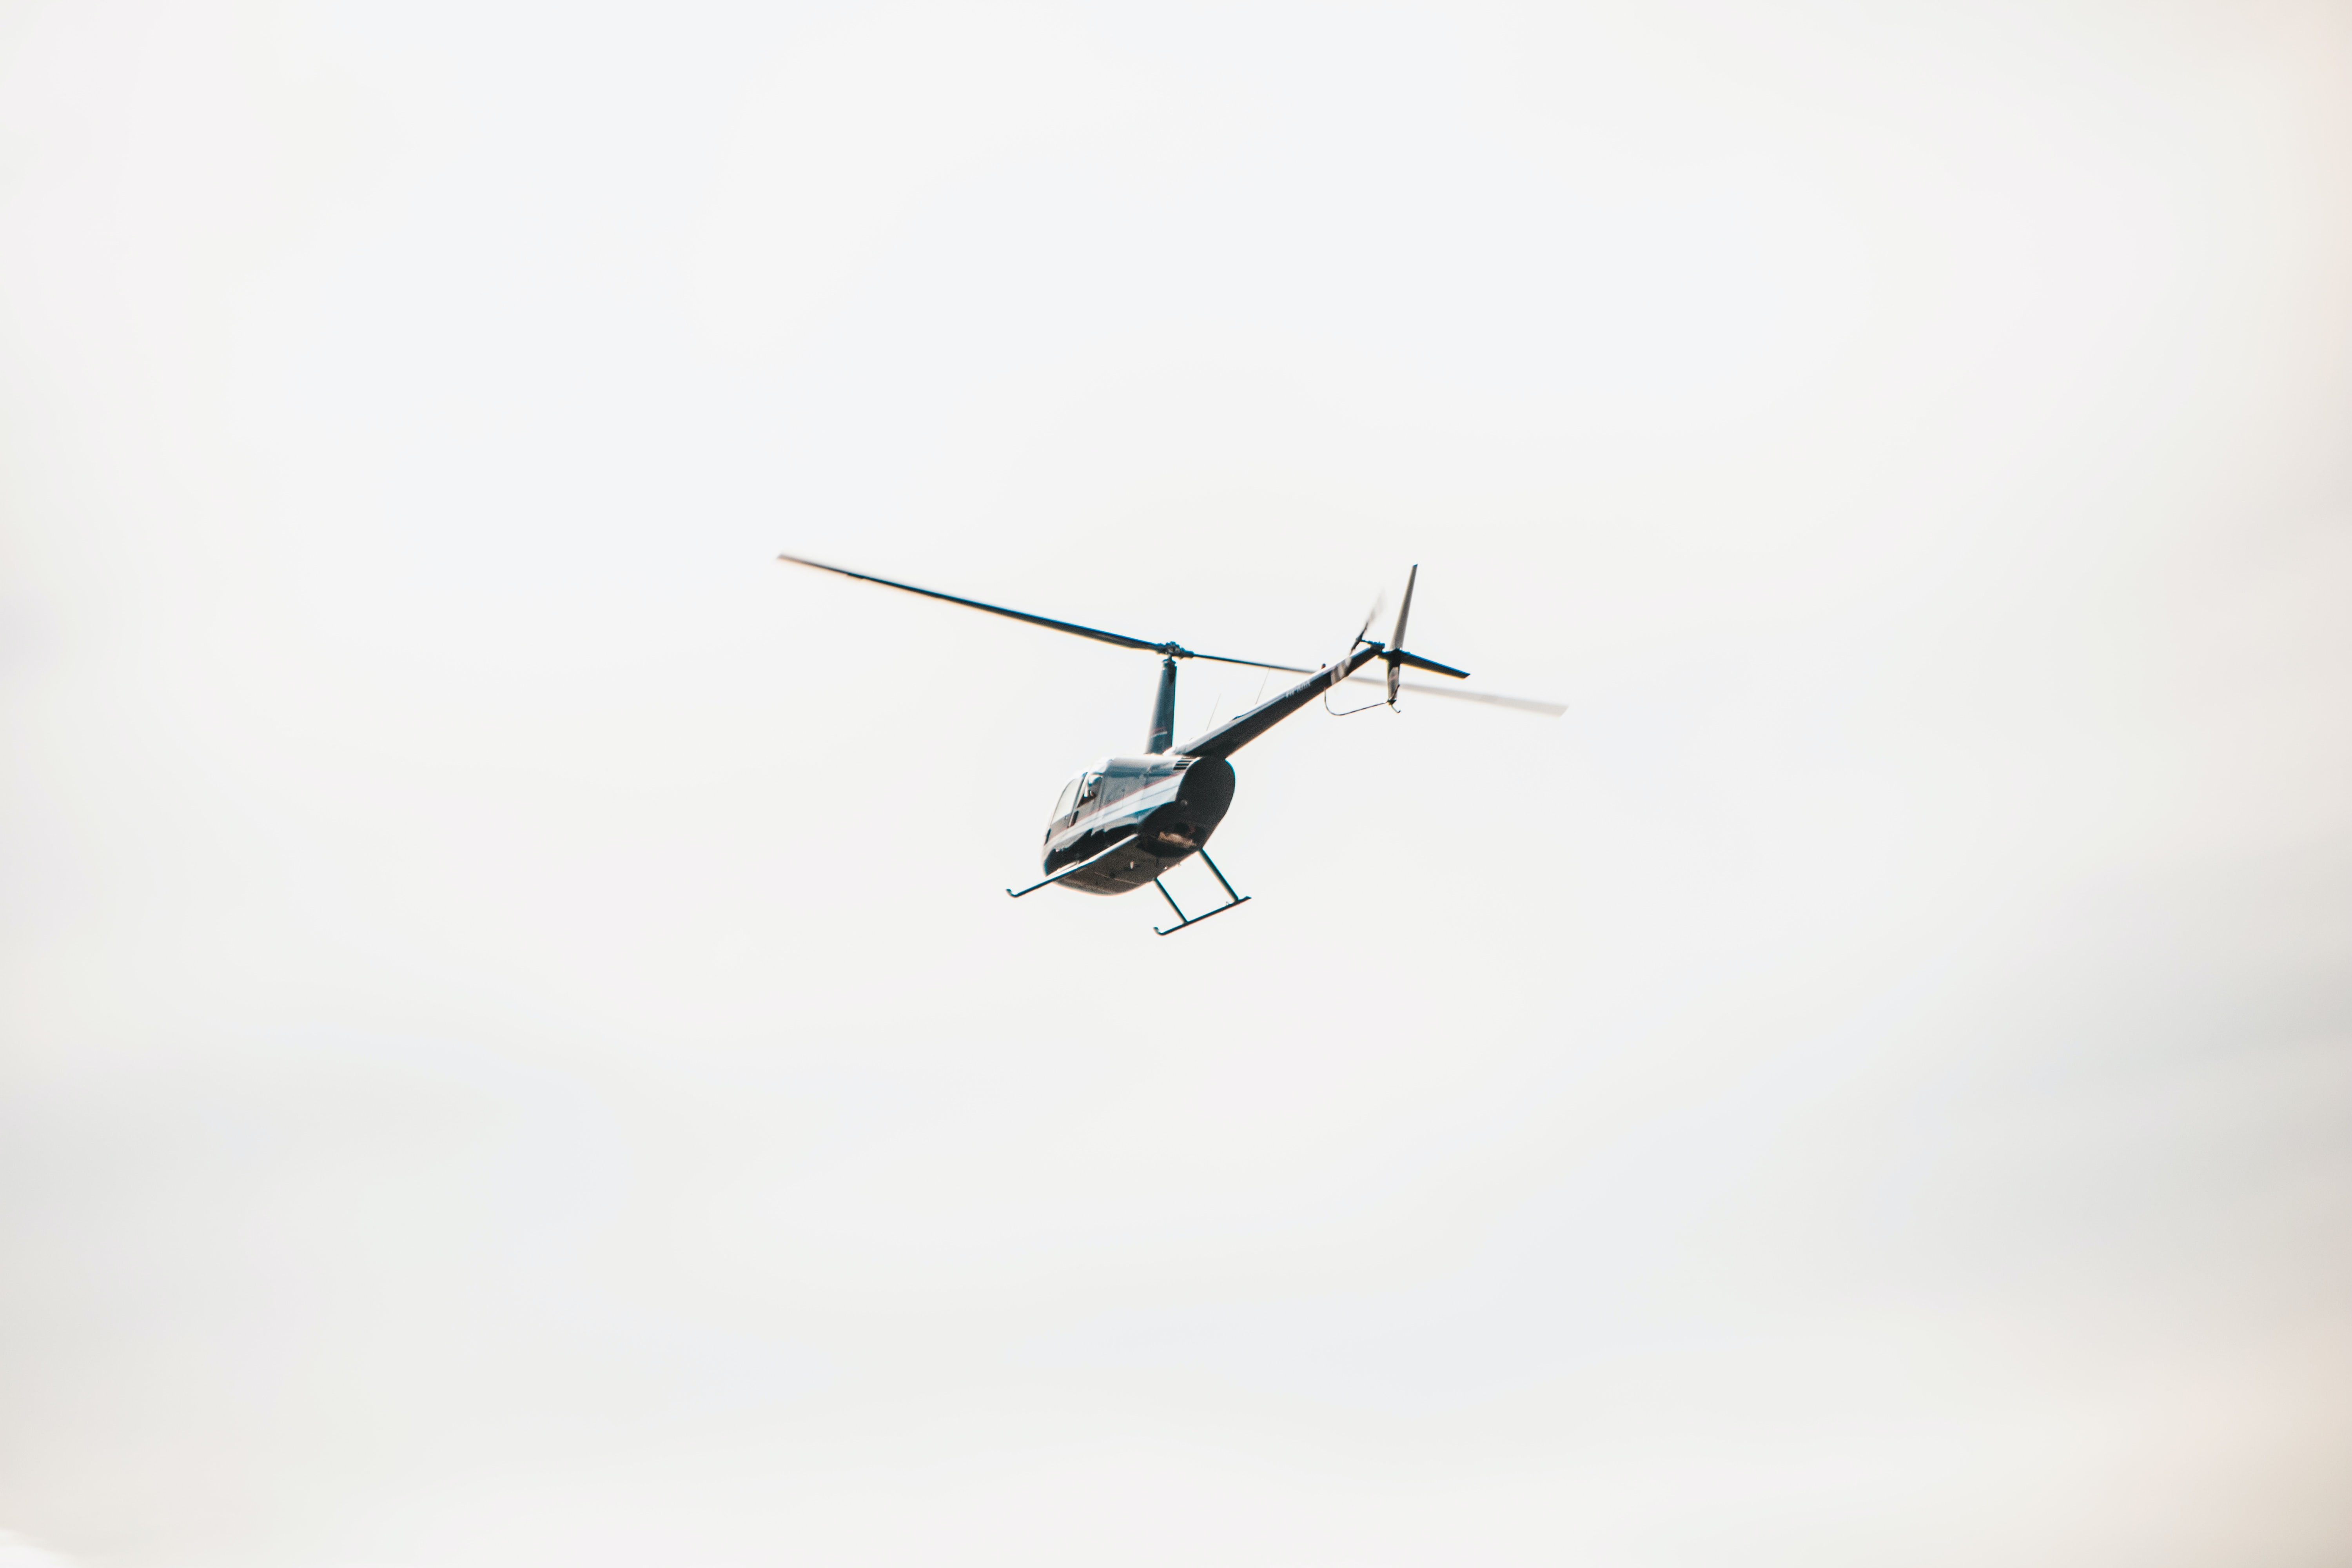 grey helicopter flying midair